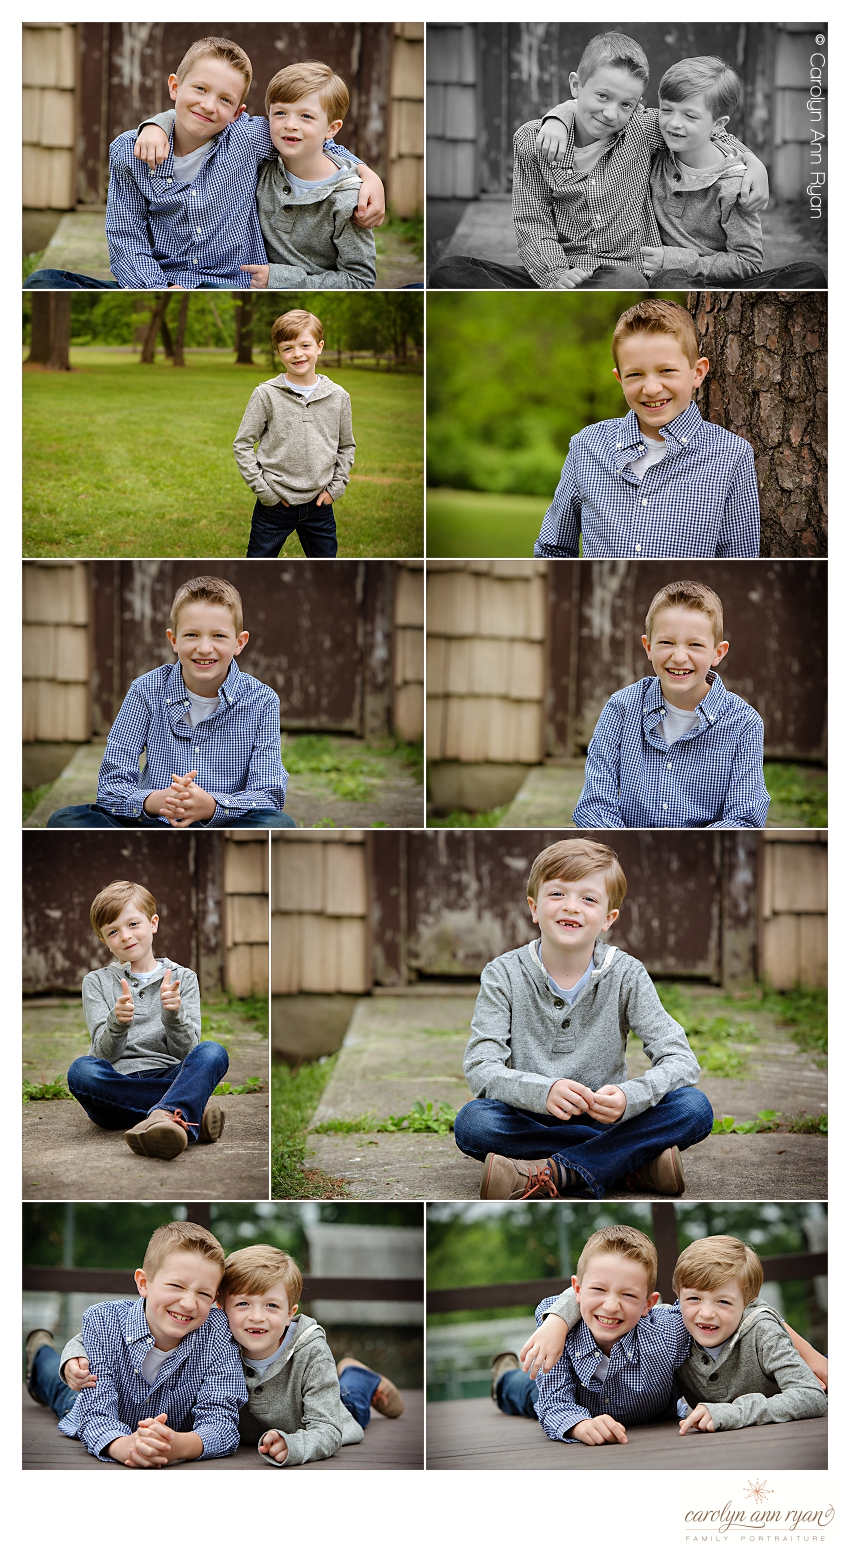 Charlotte Family Photographer, Carolyn Ann Ryan, creates portraits of brothers for a Fall Family Portrait Session